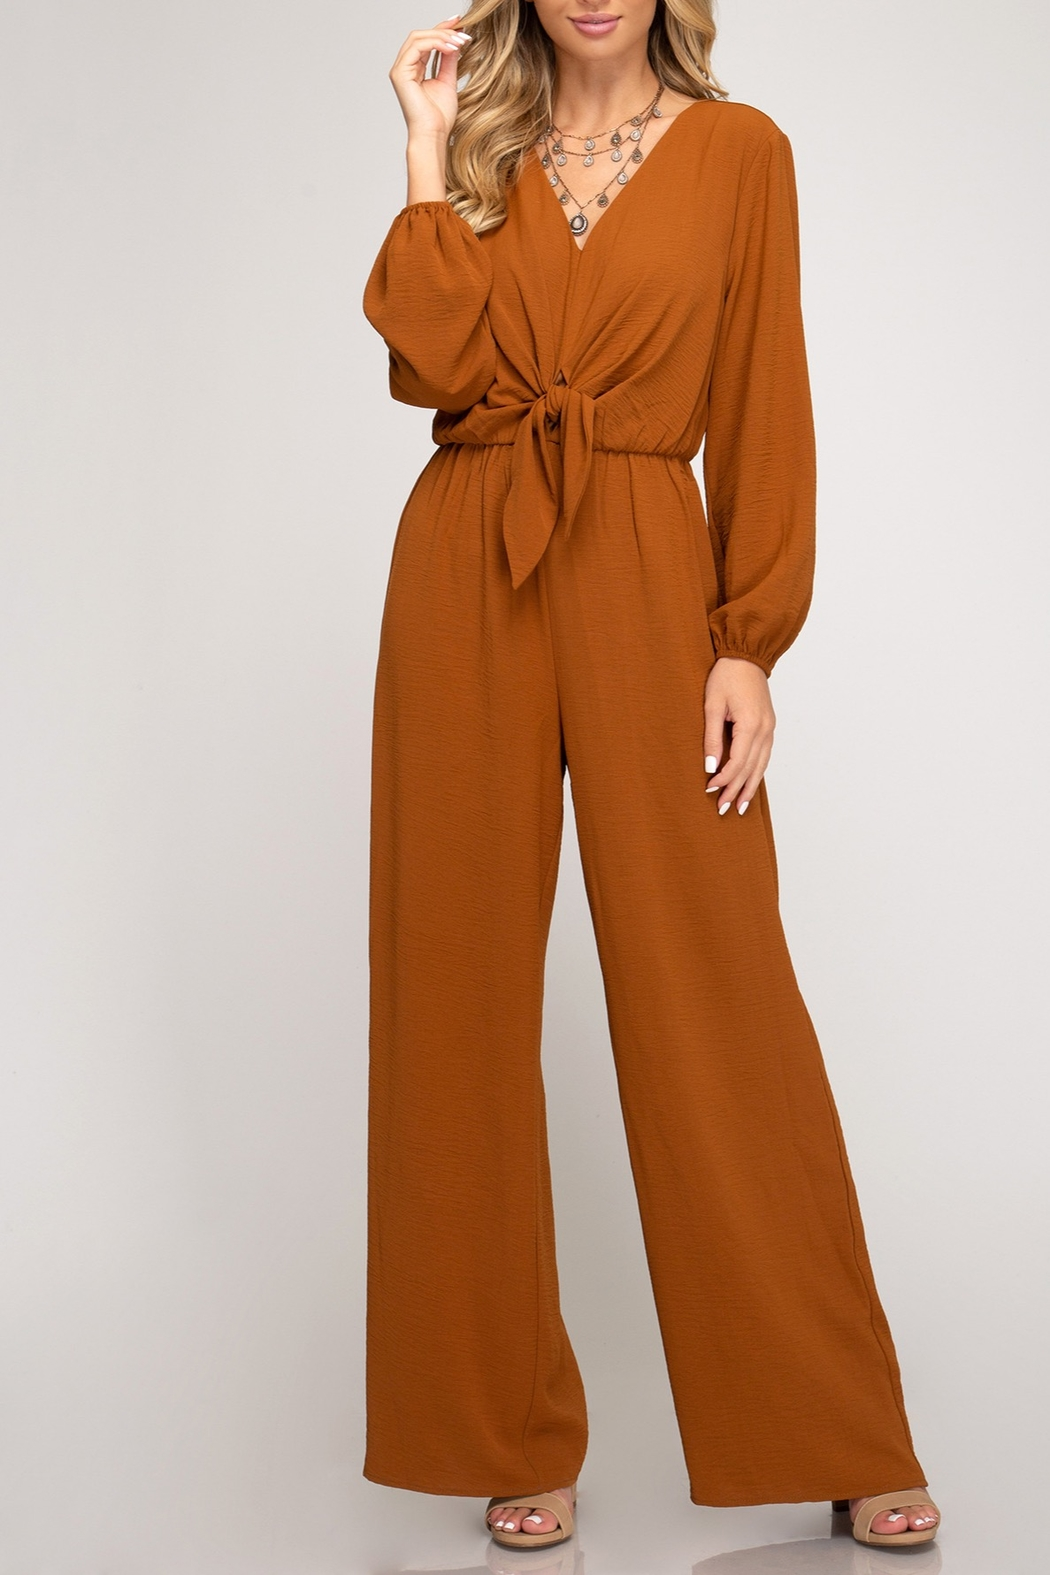 She + Sky Twisty Treats Jumpsuit - Front Cropped Image